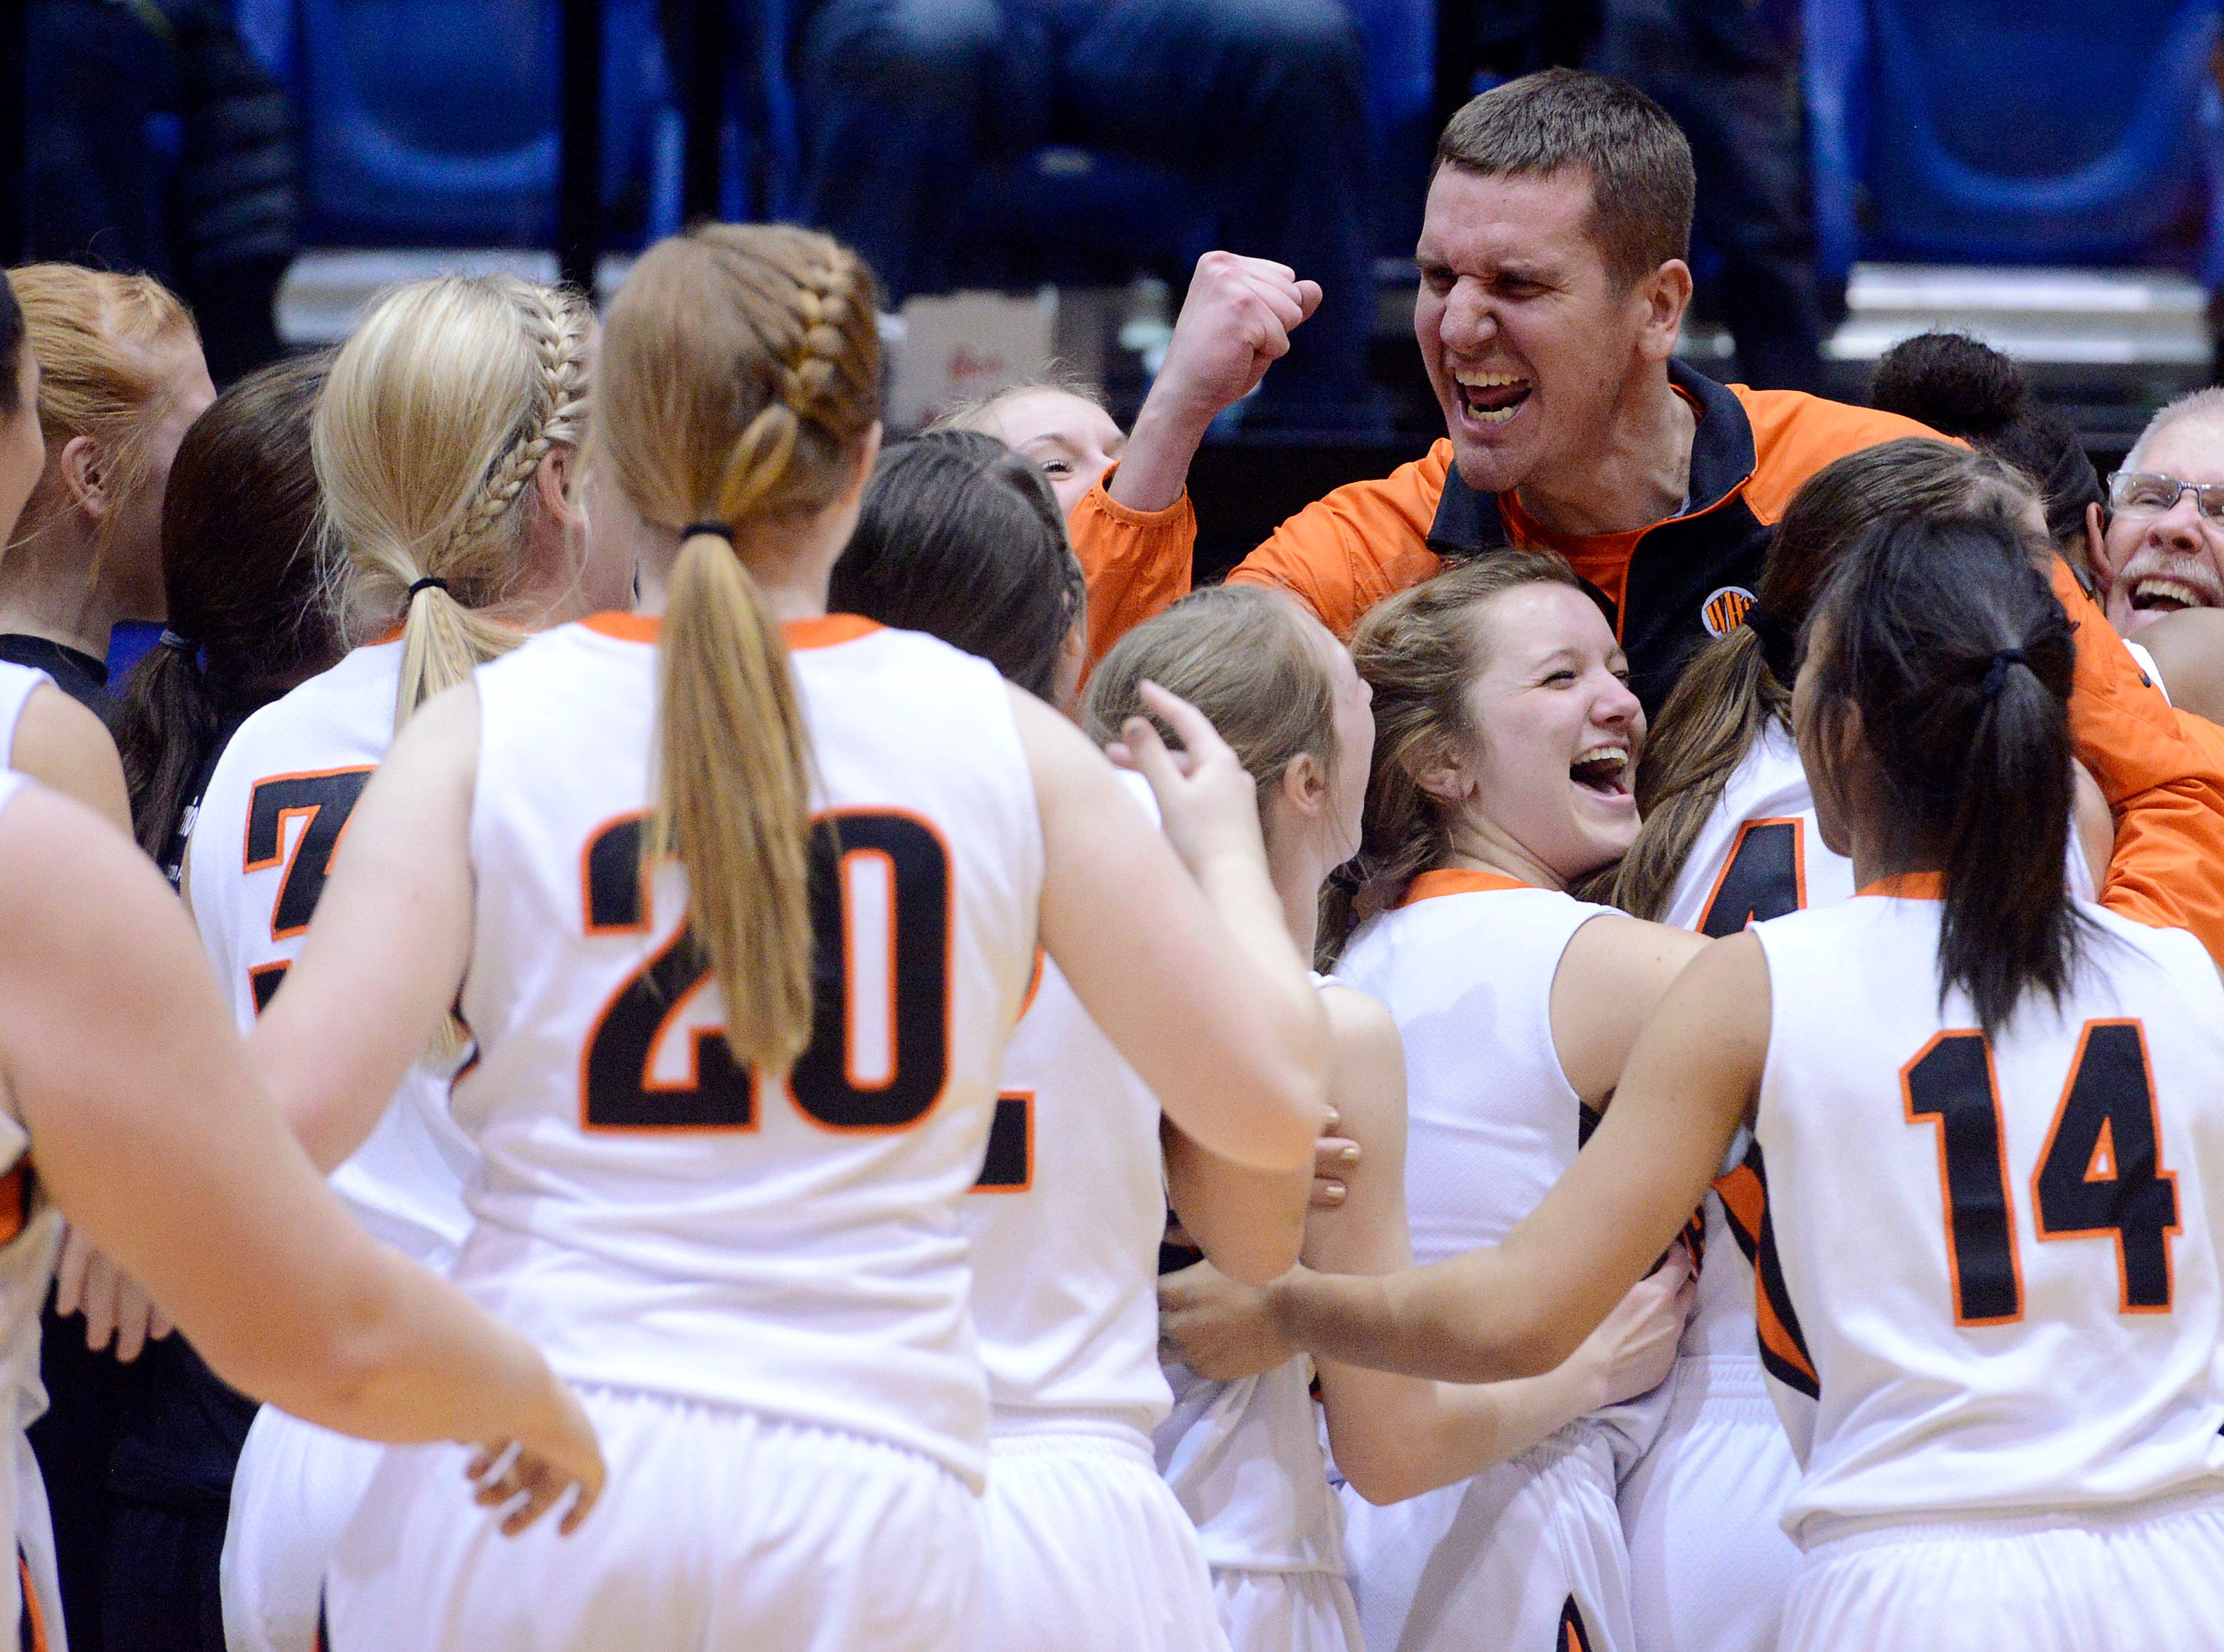 Washington head coach, Nate Malchow celebrates his team's 58-51 win over Mitchell Saturday at the Class AA girls high school basketball championship at Frost Arena in Brookings, March 15, 2014. 